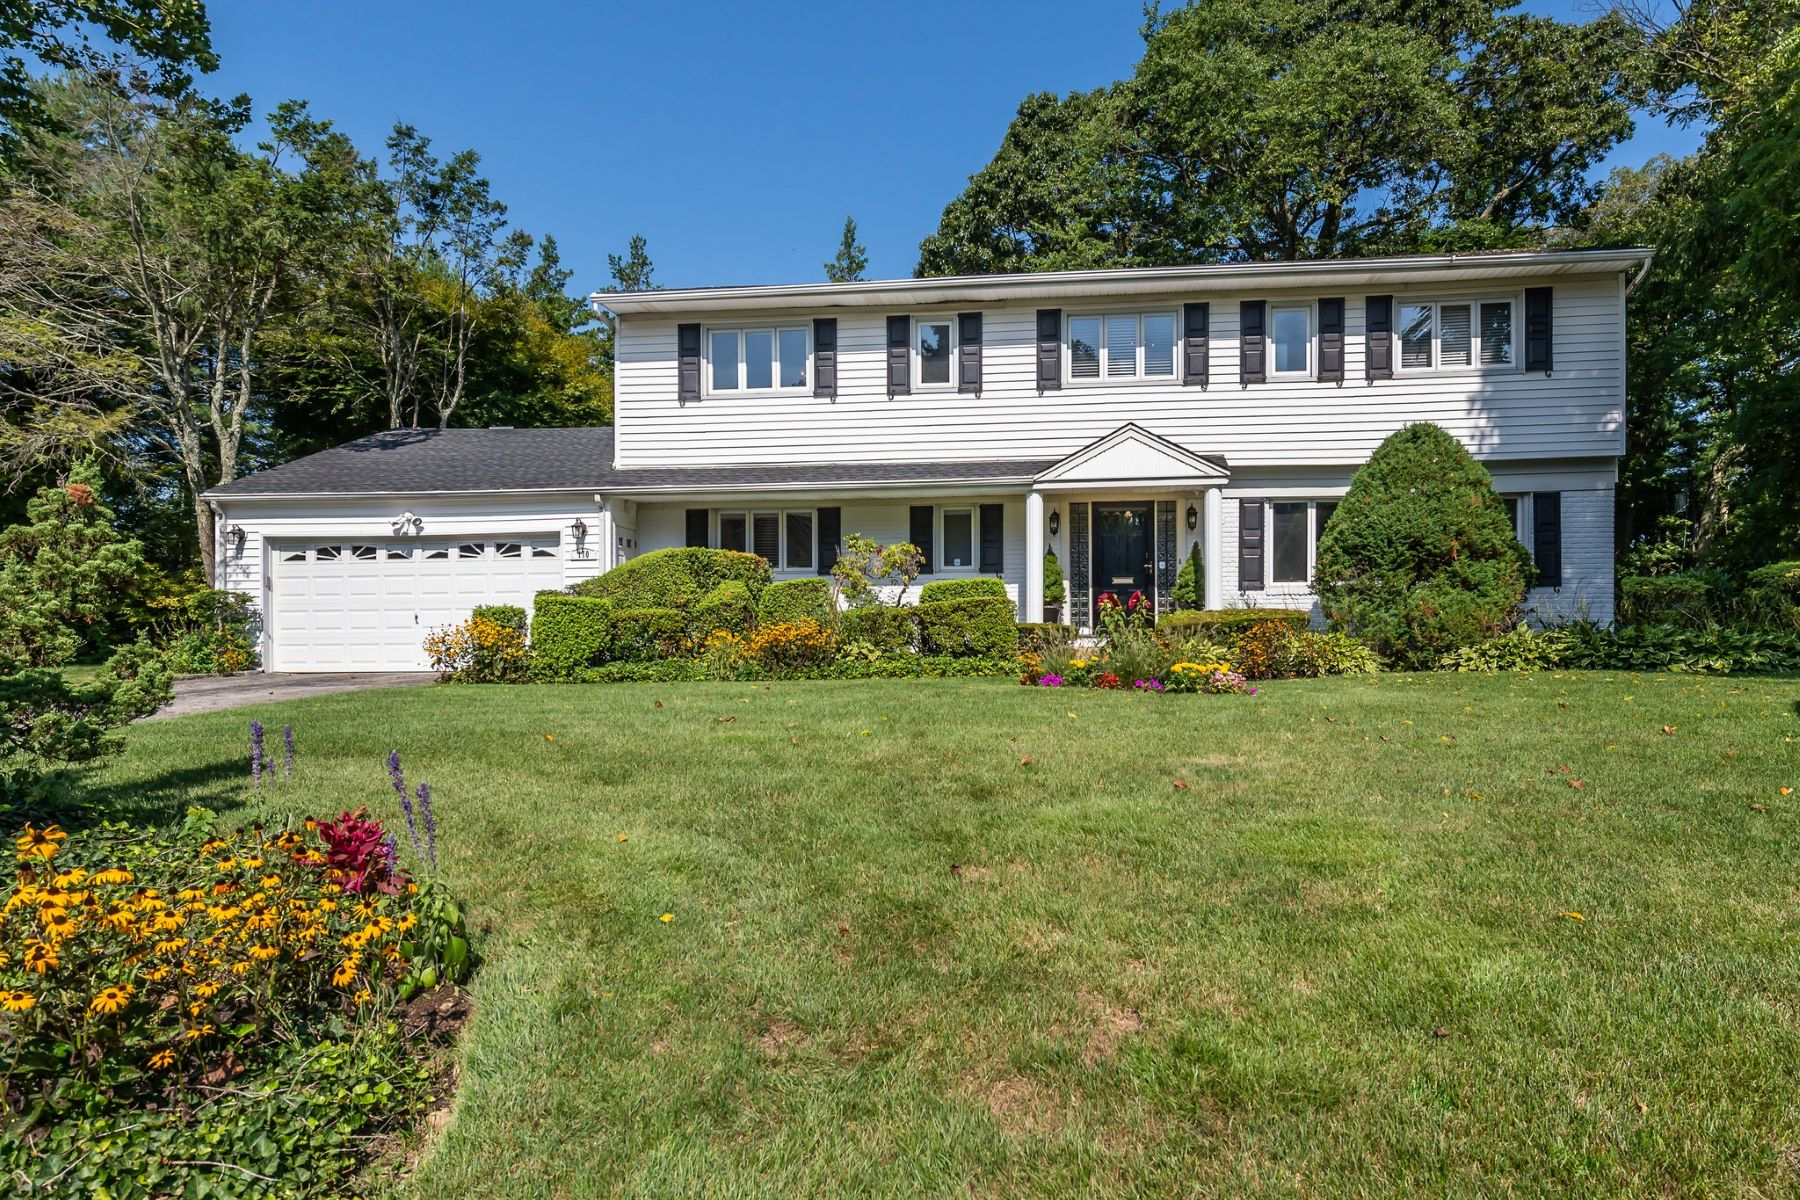 Single Family Homes for Active at East Hills 170 Chestnut Dr East Hills, New York 11576 United States